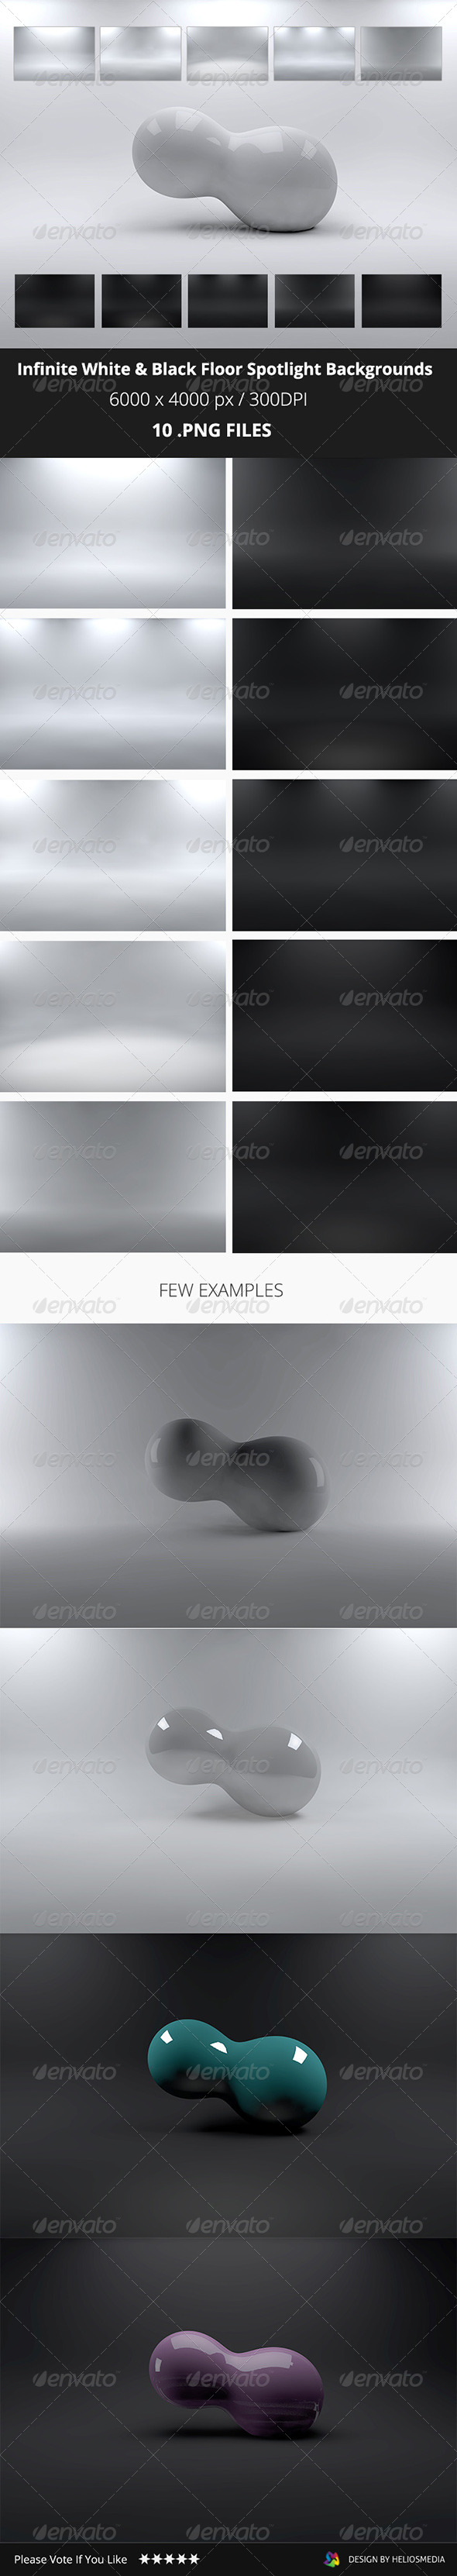 GraphicRiver Infinite White & Black Floor Spotlight Backgrounds 7614163